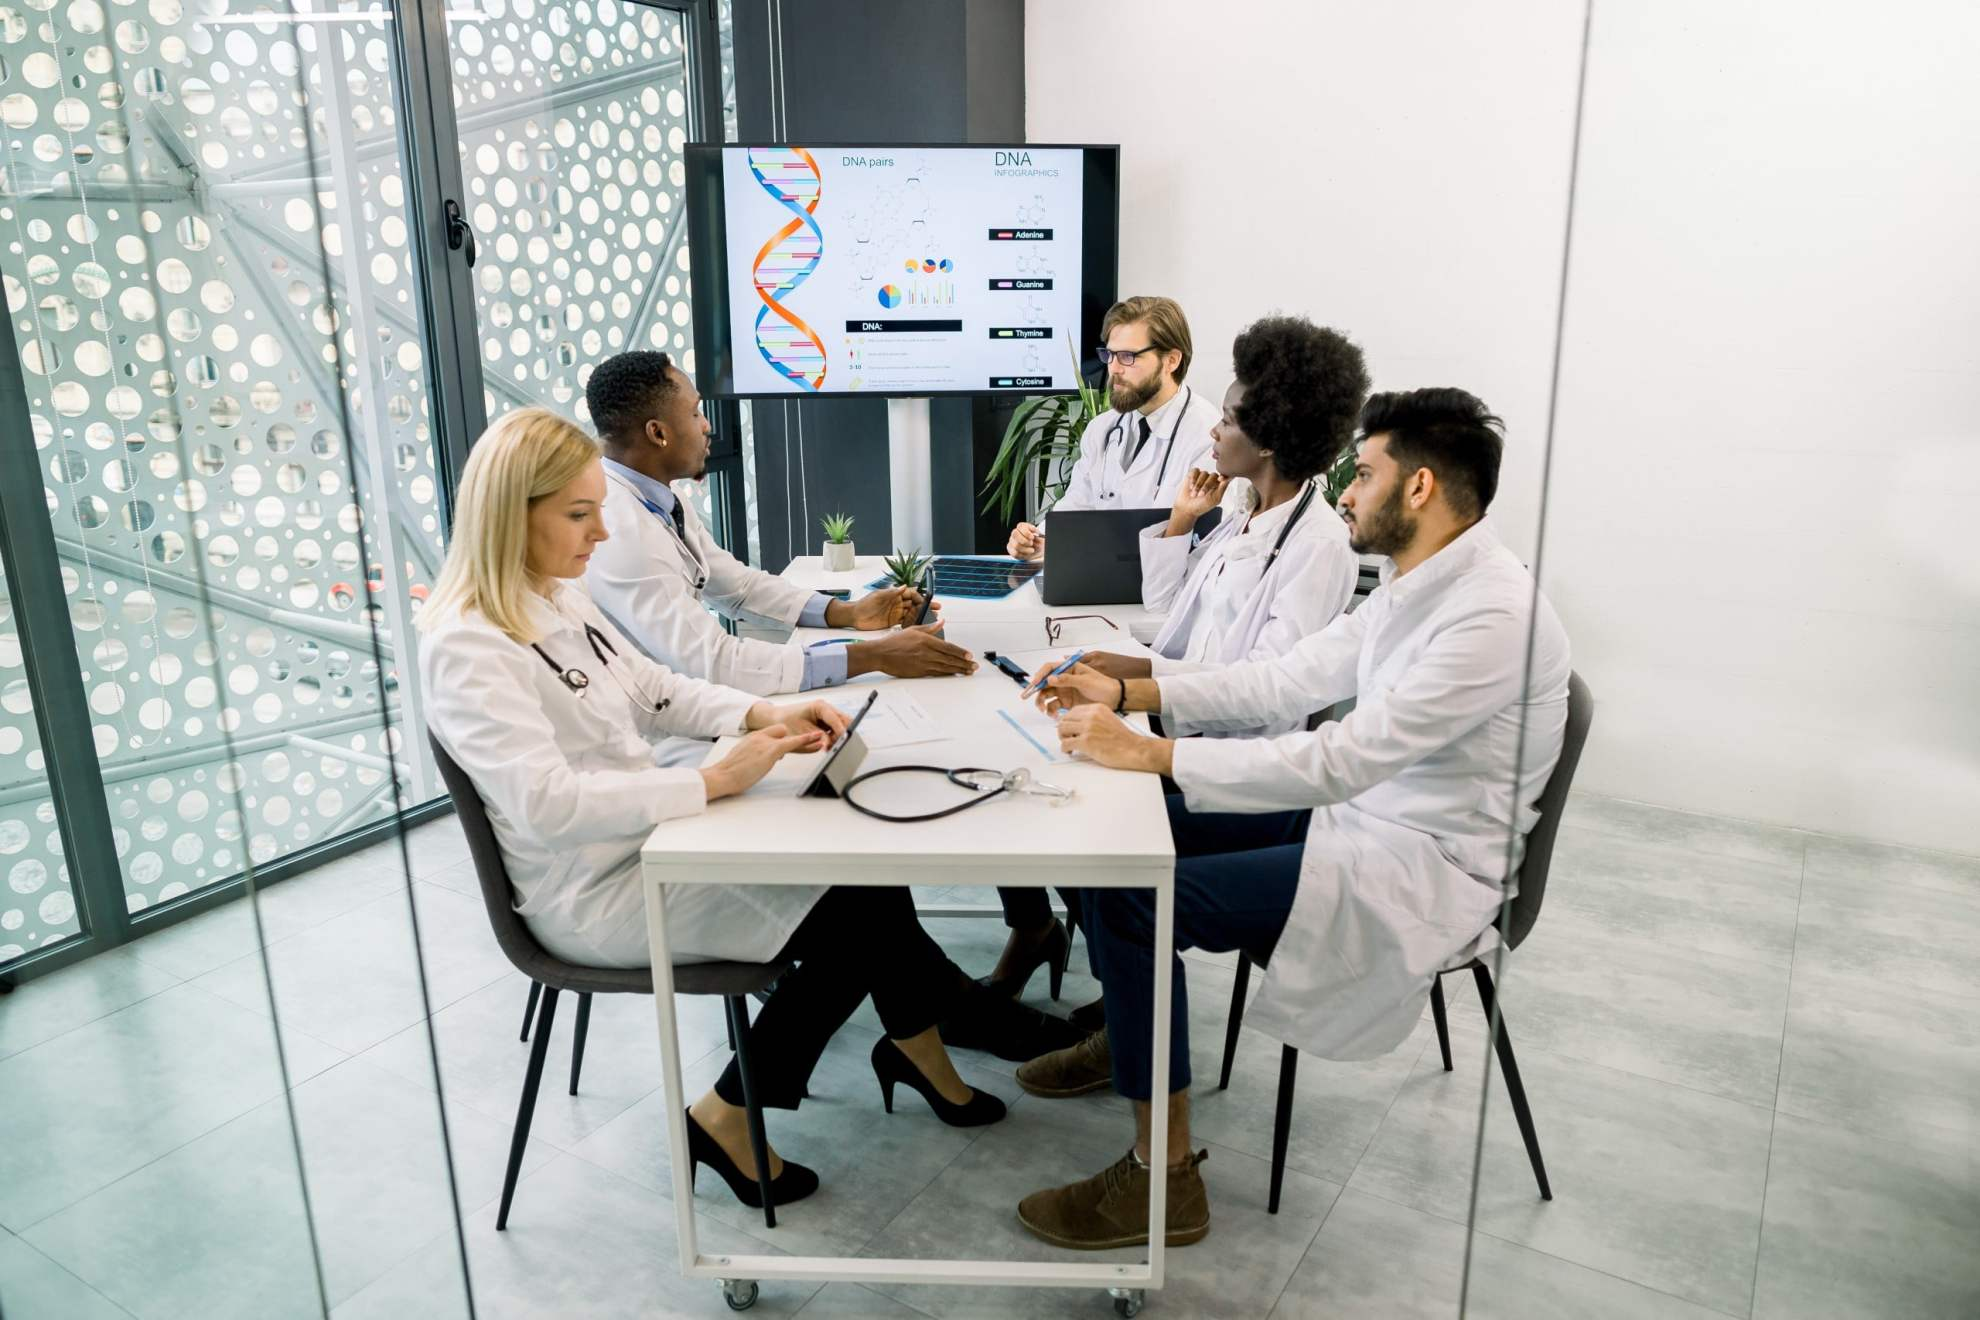 Team of scientists designing a clinical trial at a conference table.